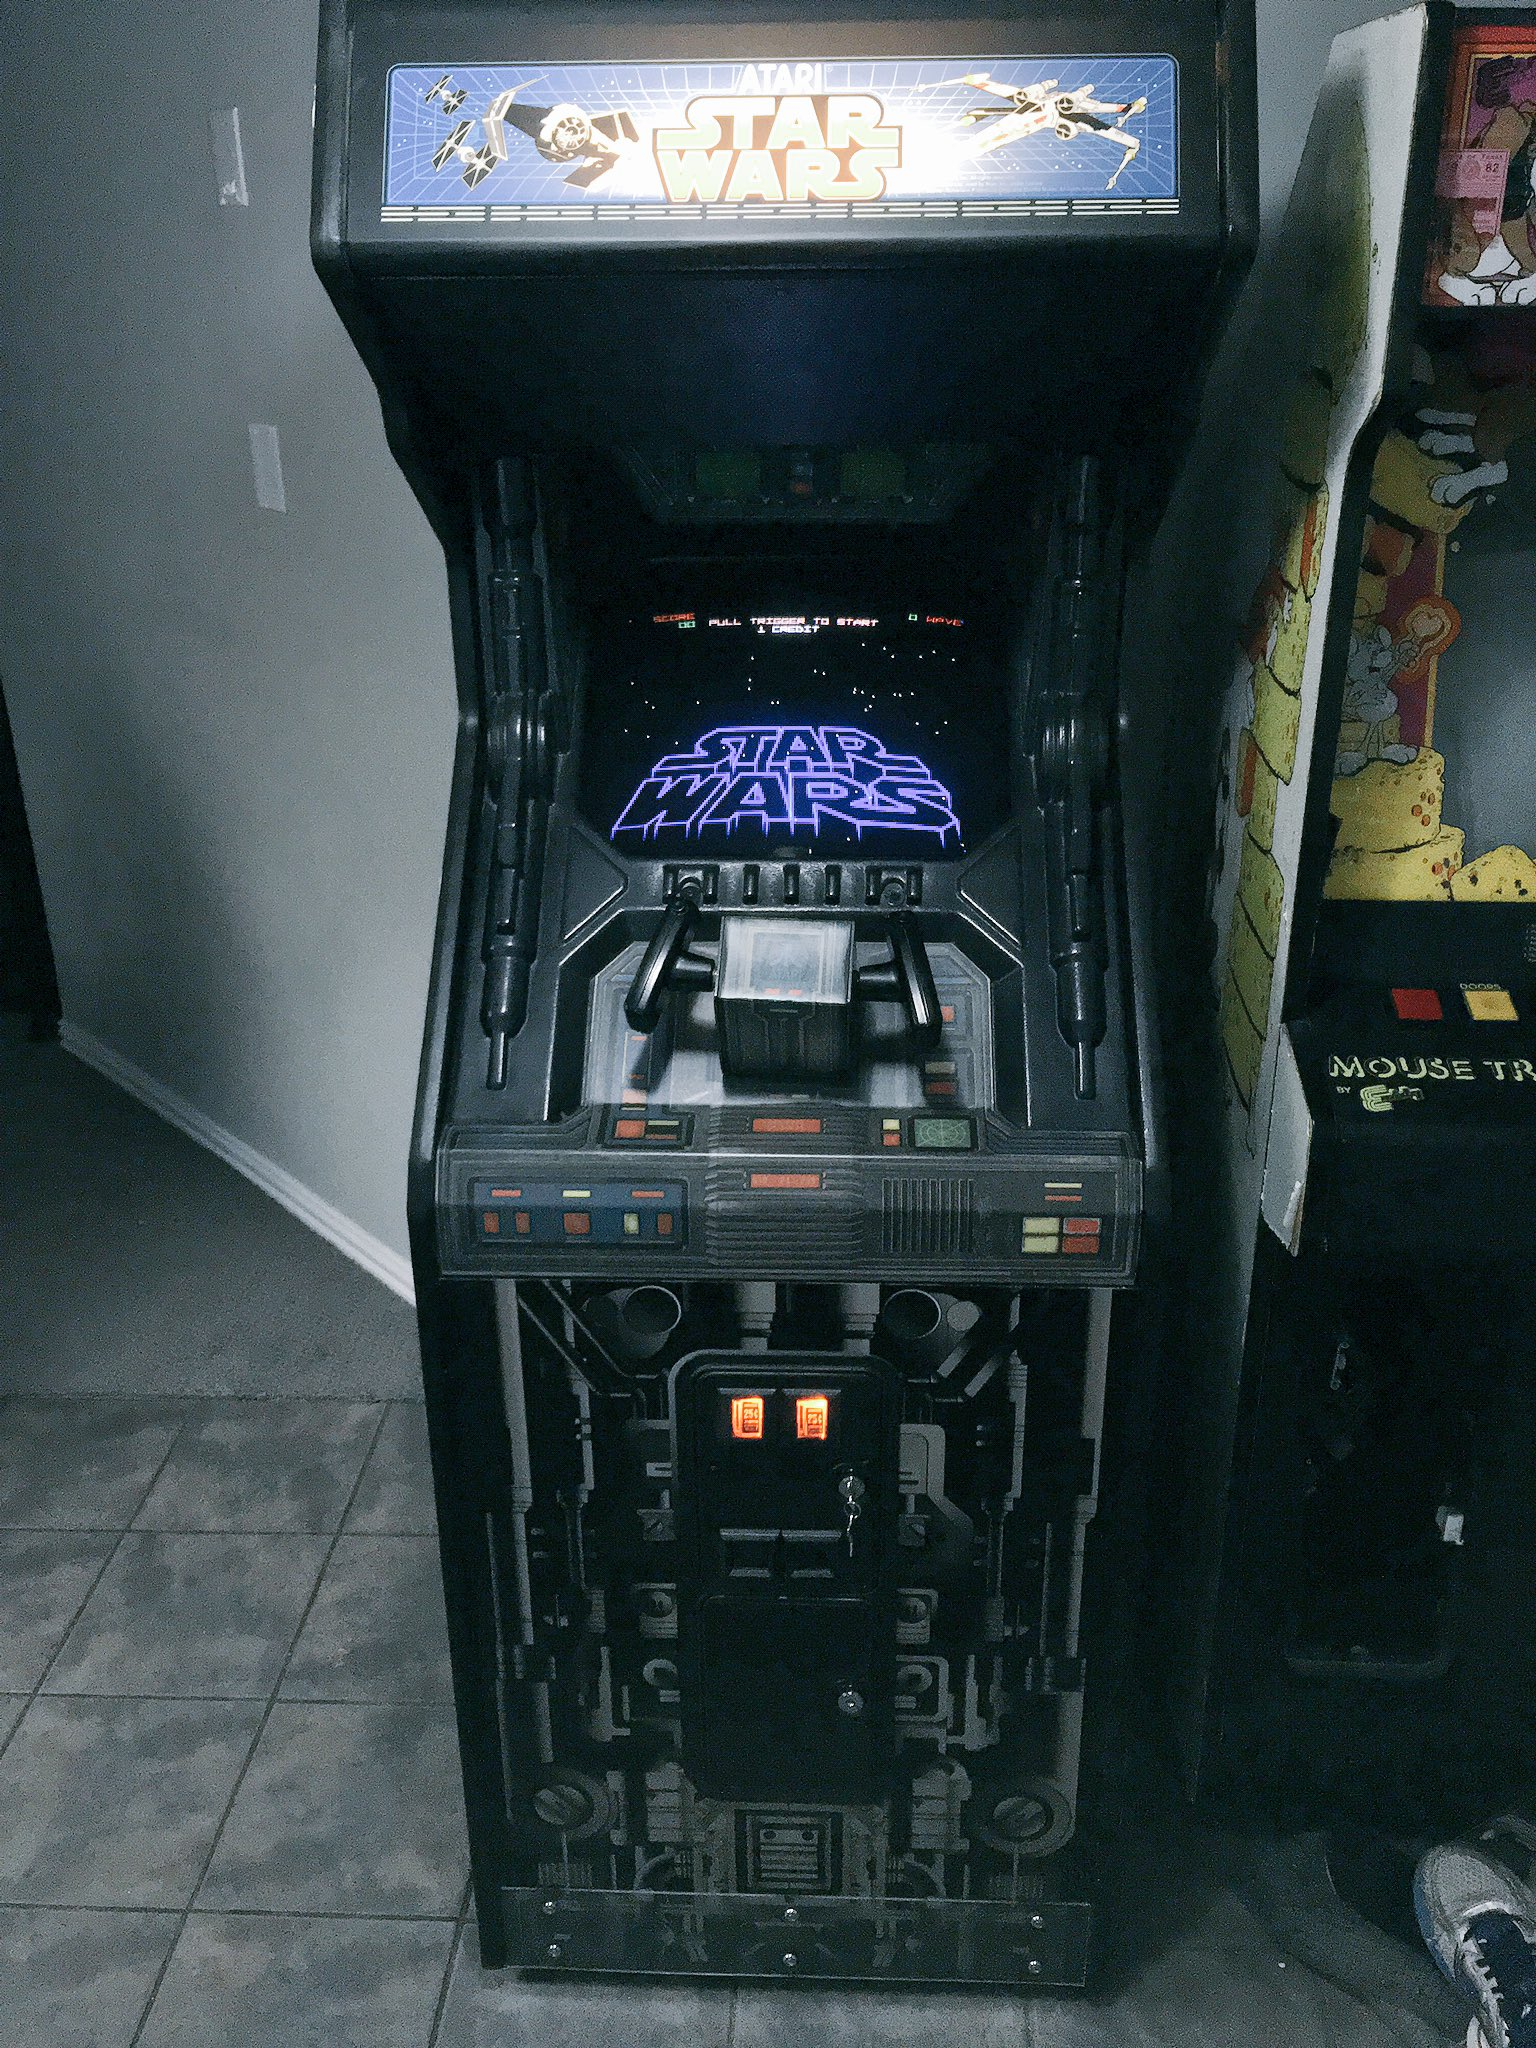 Star Wars Cabinet Atari Star Wars Cabinet Rear Wheels What Do You Know About Them